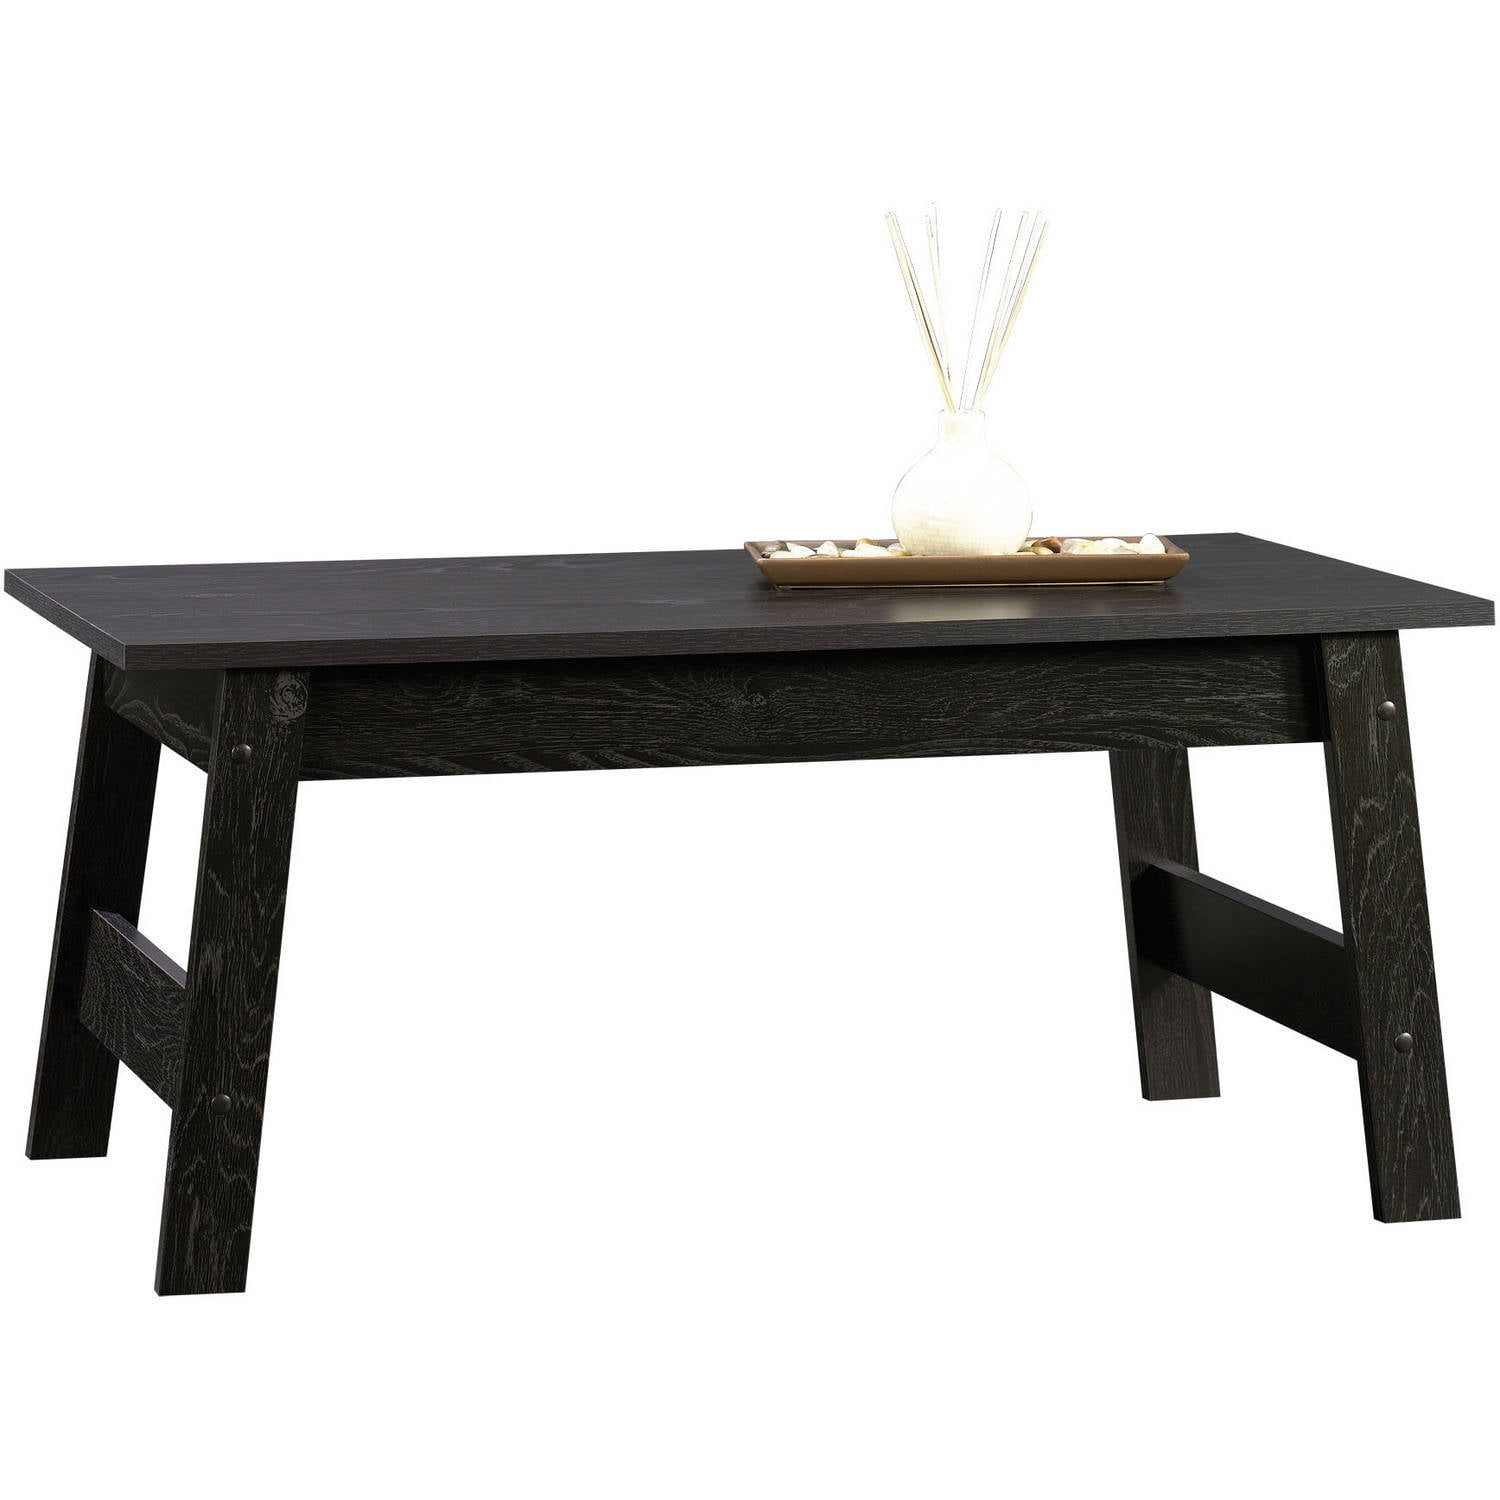 Sauder beginnings collection coffee table black walmart geotapseo Image collections